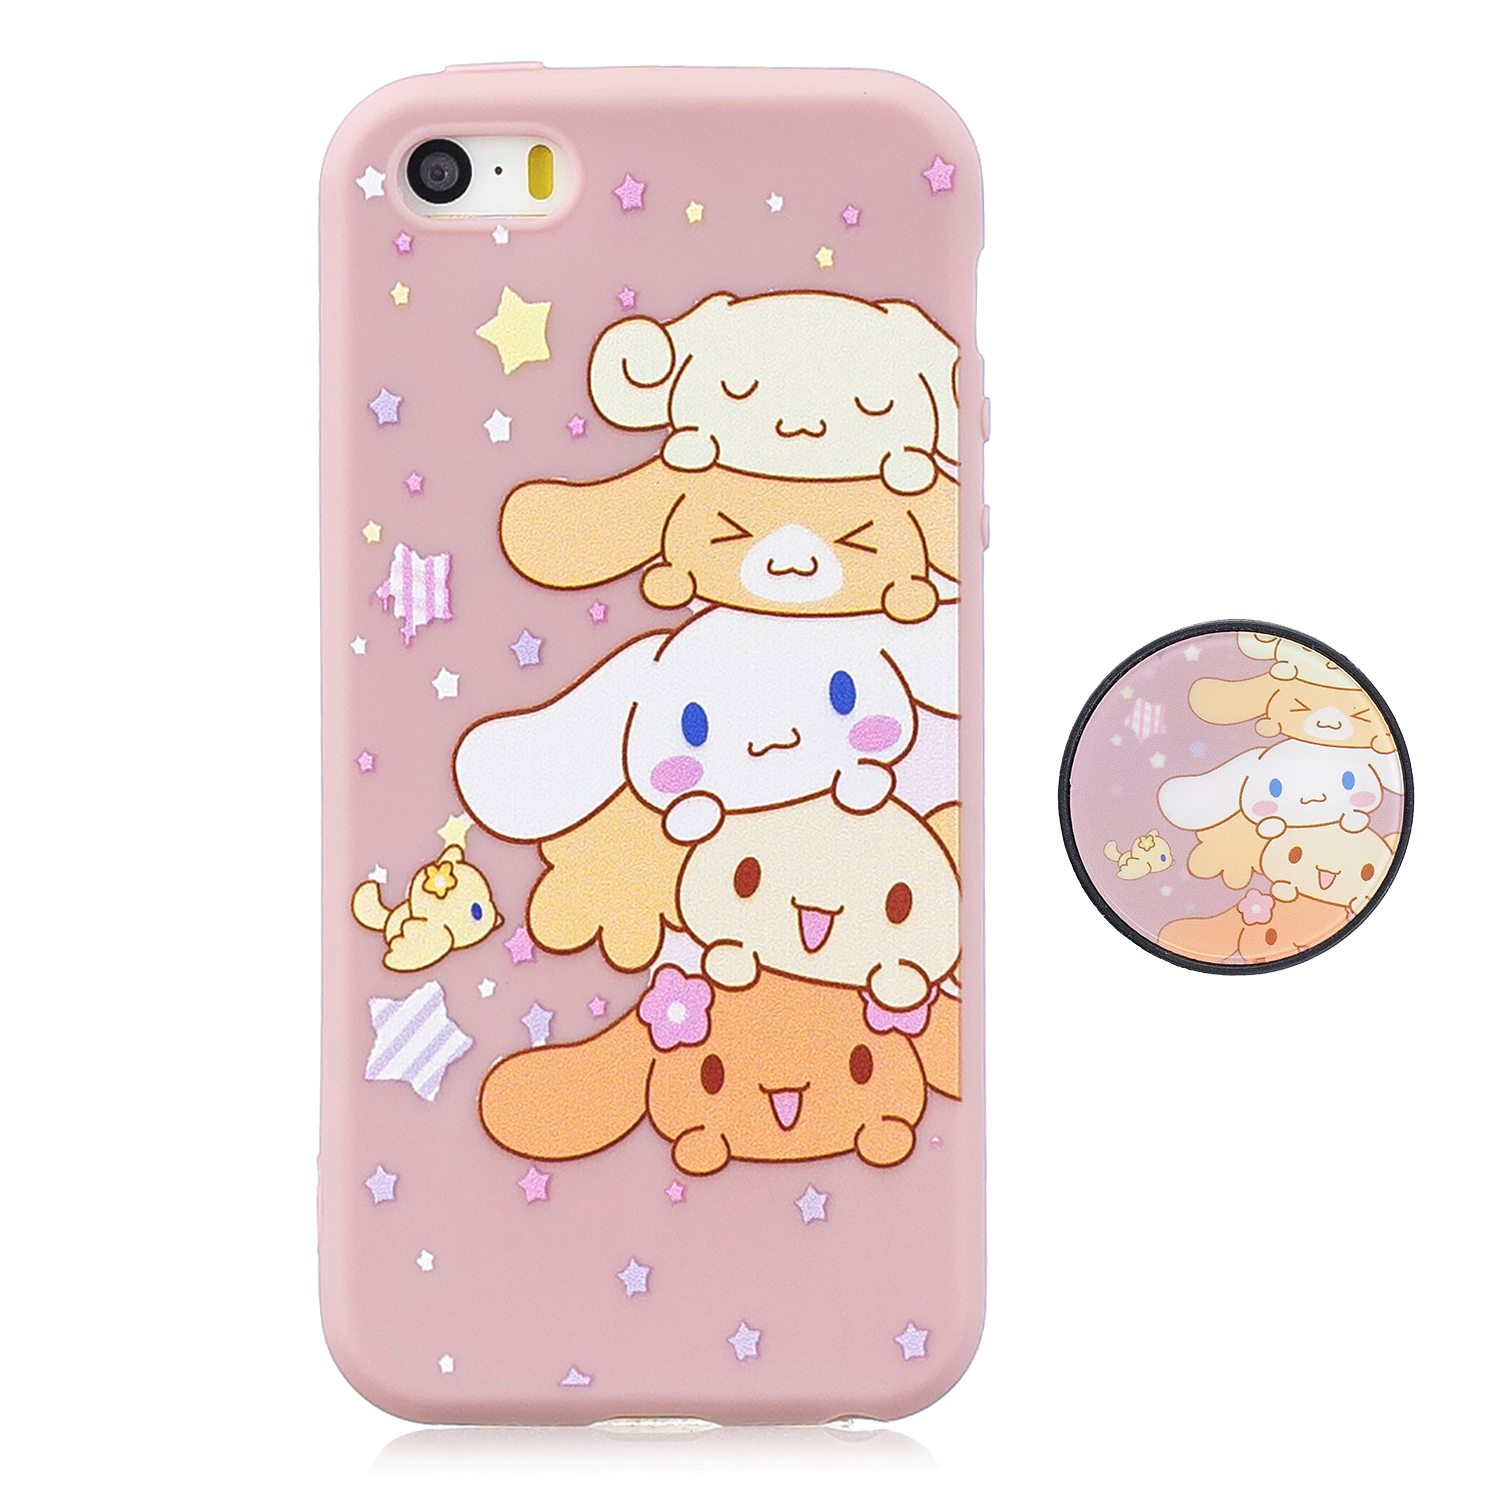 For iPhone 5 5S SE Phone Cases TPU Full Cover Cute Cartoon Painted Case Girls Mobile Phone Cover 1